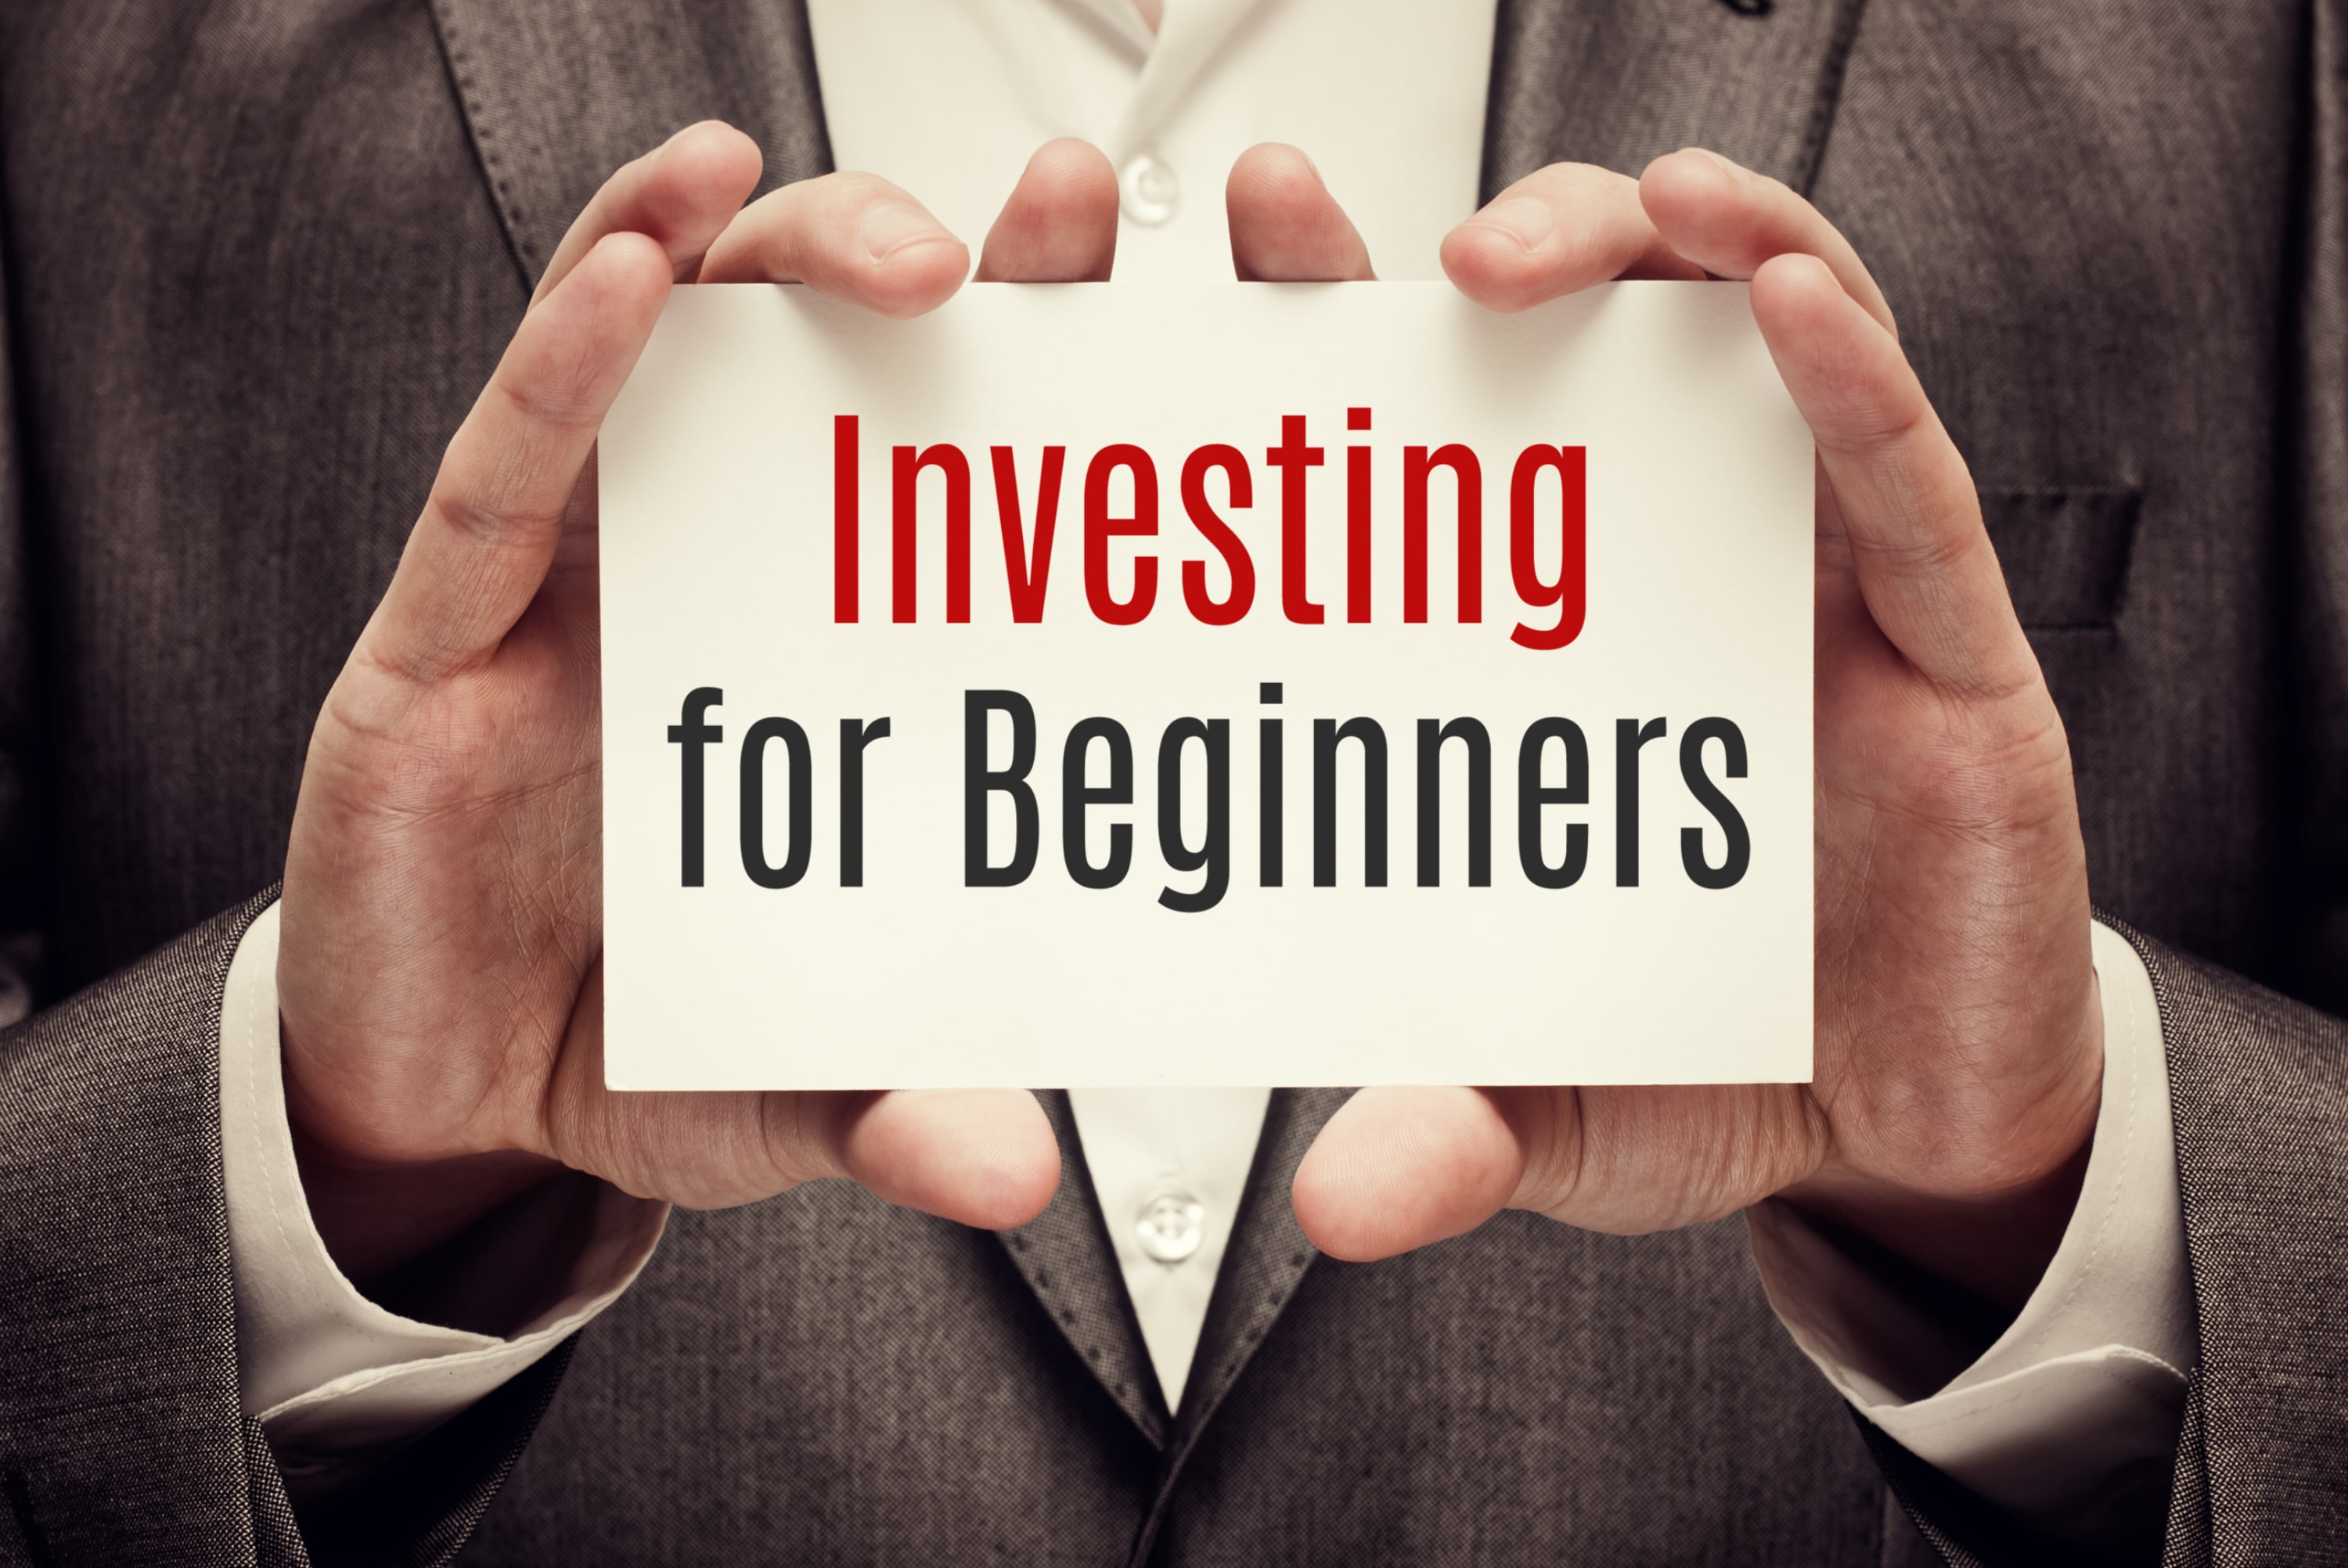 8 Stock Market Investing Tips & Guide for Beginners - Checklist